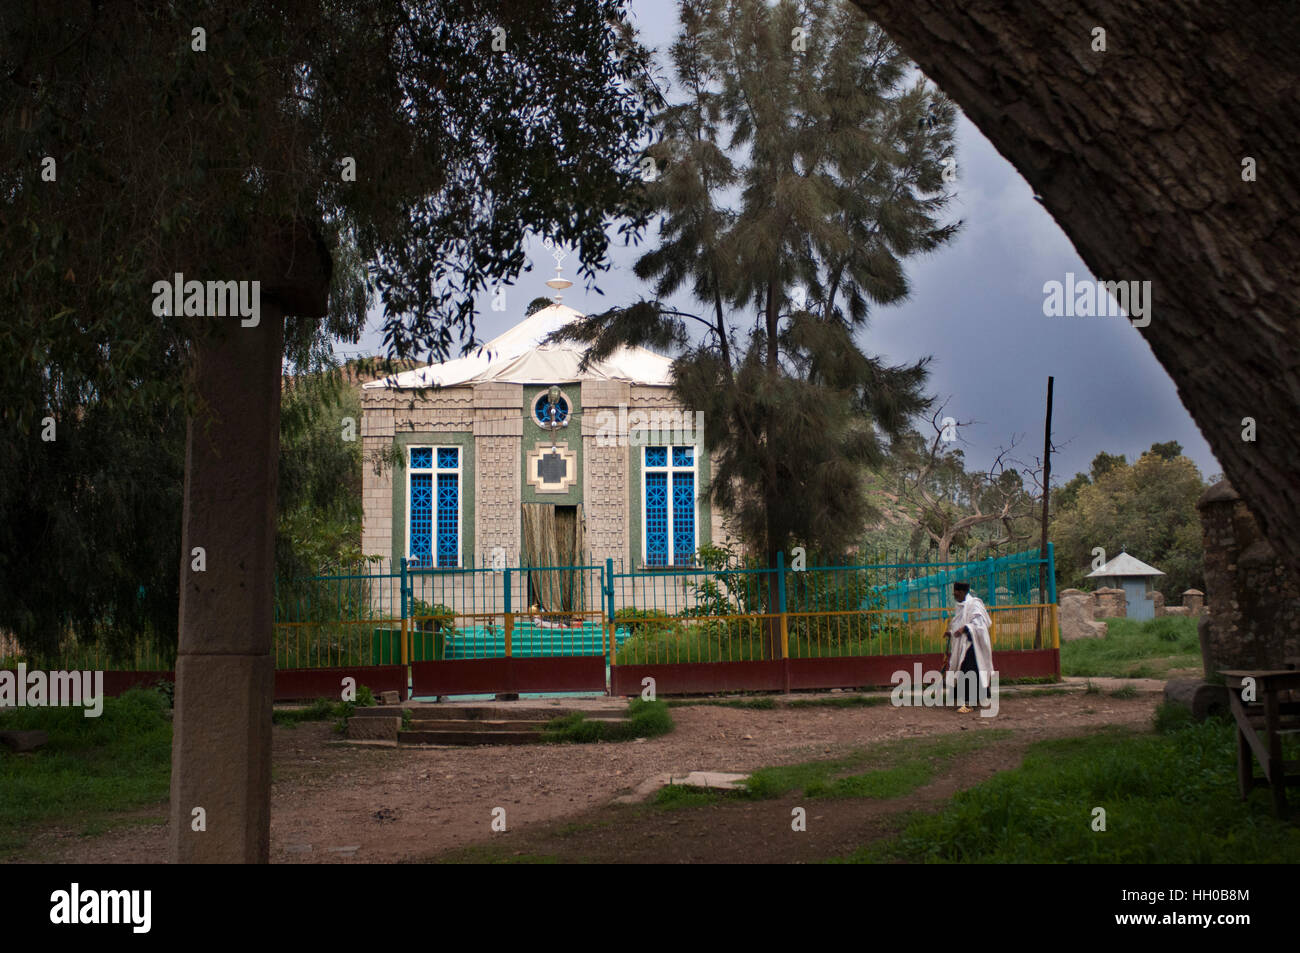 St mary of zion church aksum ethiopia the ark of the covenant in st mary of zion church aksum ethiopia the ark of the covenant in the church of st mary of zion in axum the church of st mary of zion is located i publicscrutiny Images